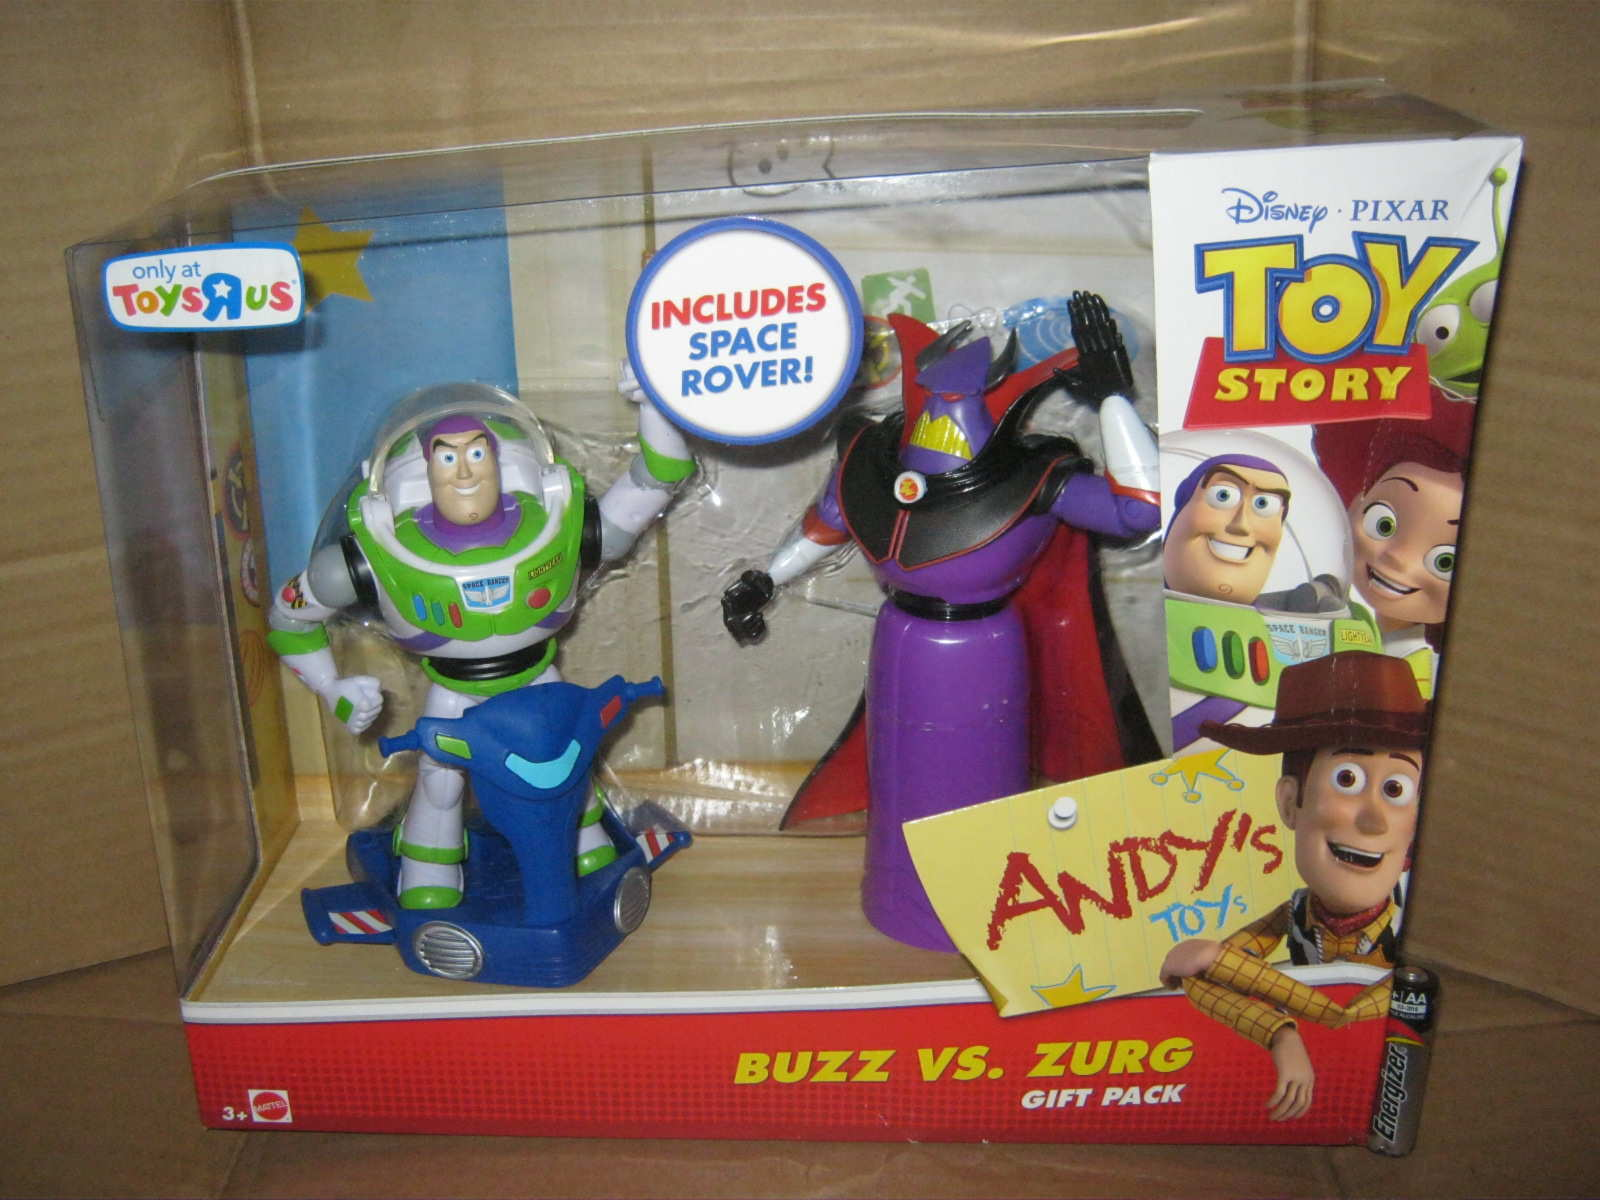 buzz lightyear vs zurg gift pack toy story action figure gembul toys